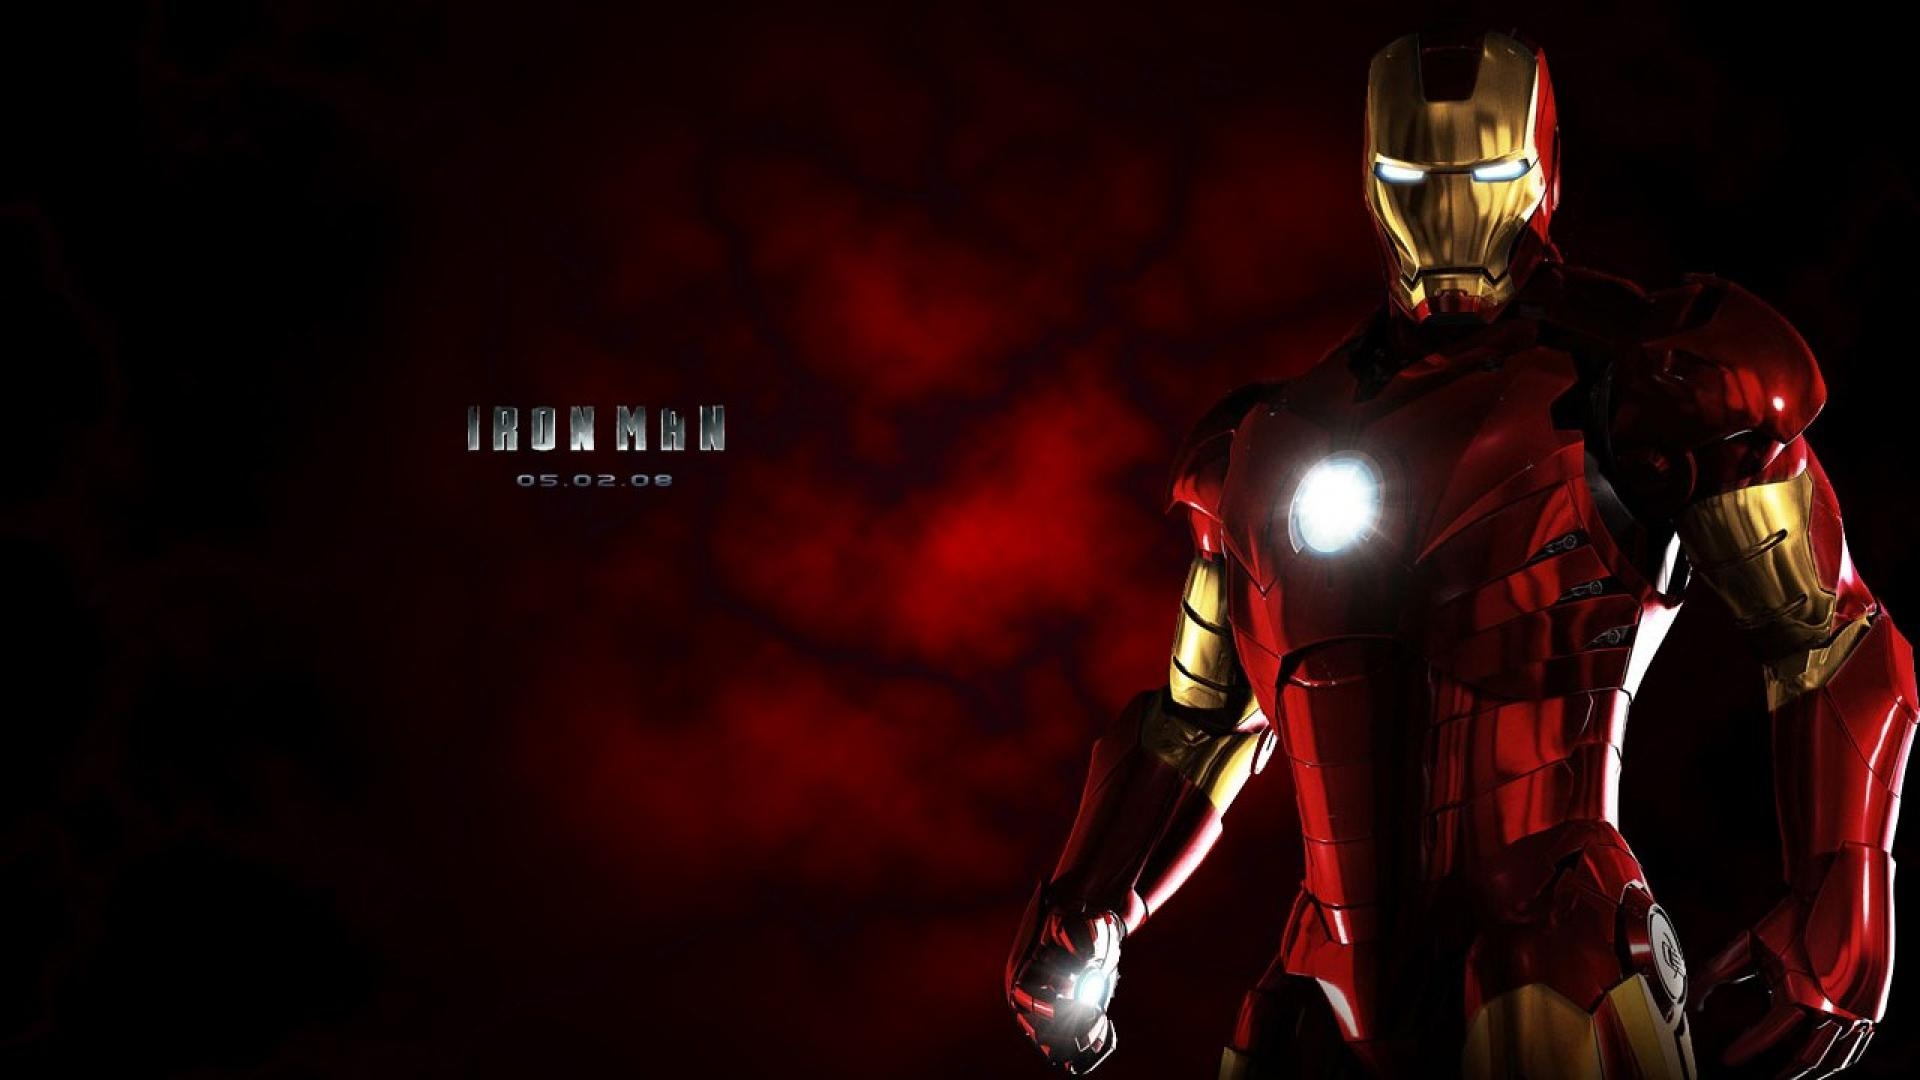 iron man pictures marvel